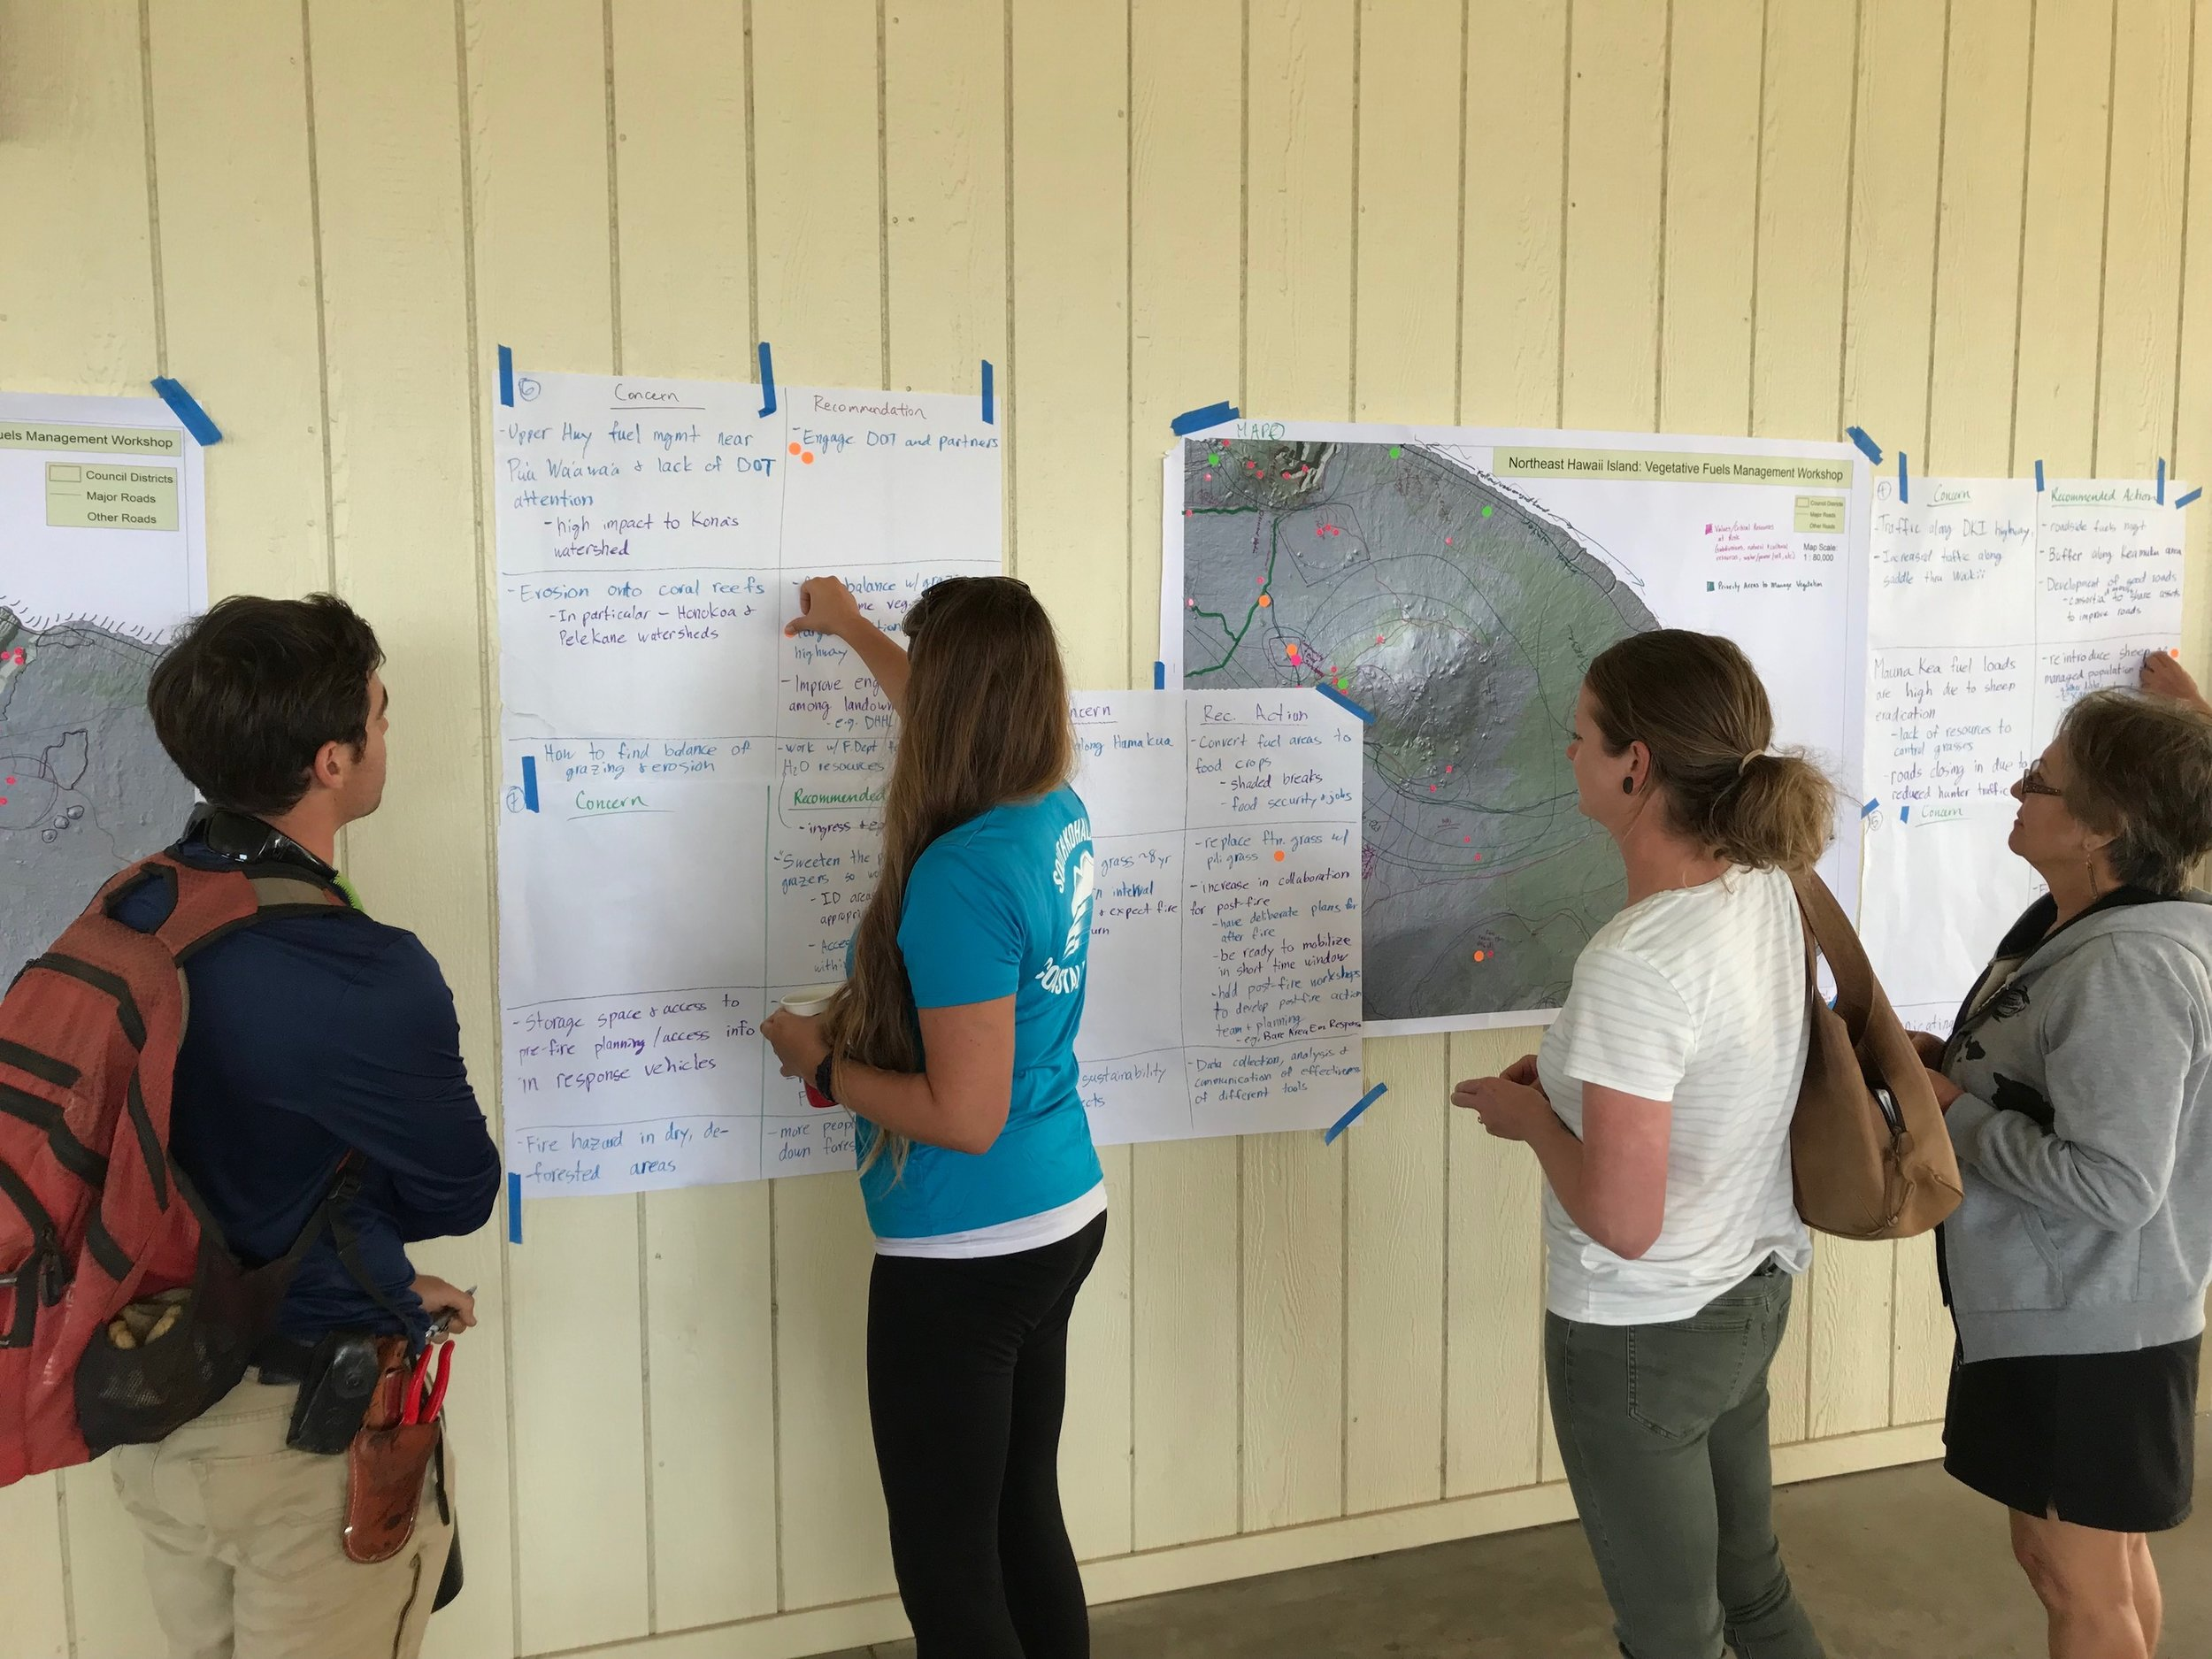 Hawaii Island Kailapa Vegetative Fuels Management Collaborative Action Planning Workshop_2_26_2019_74.jpg